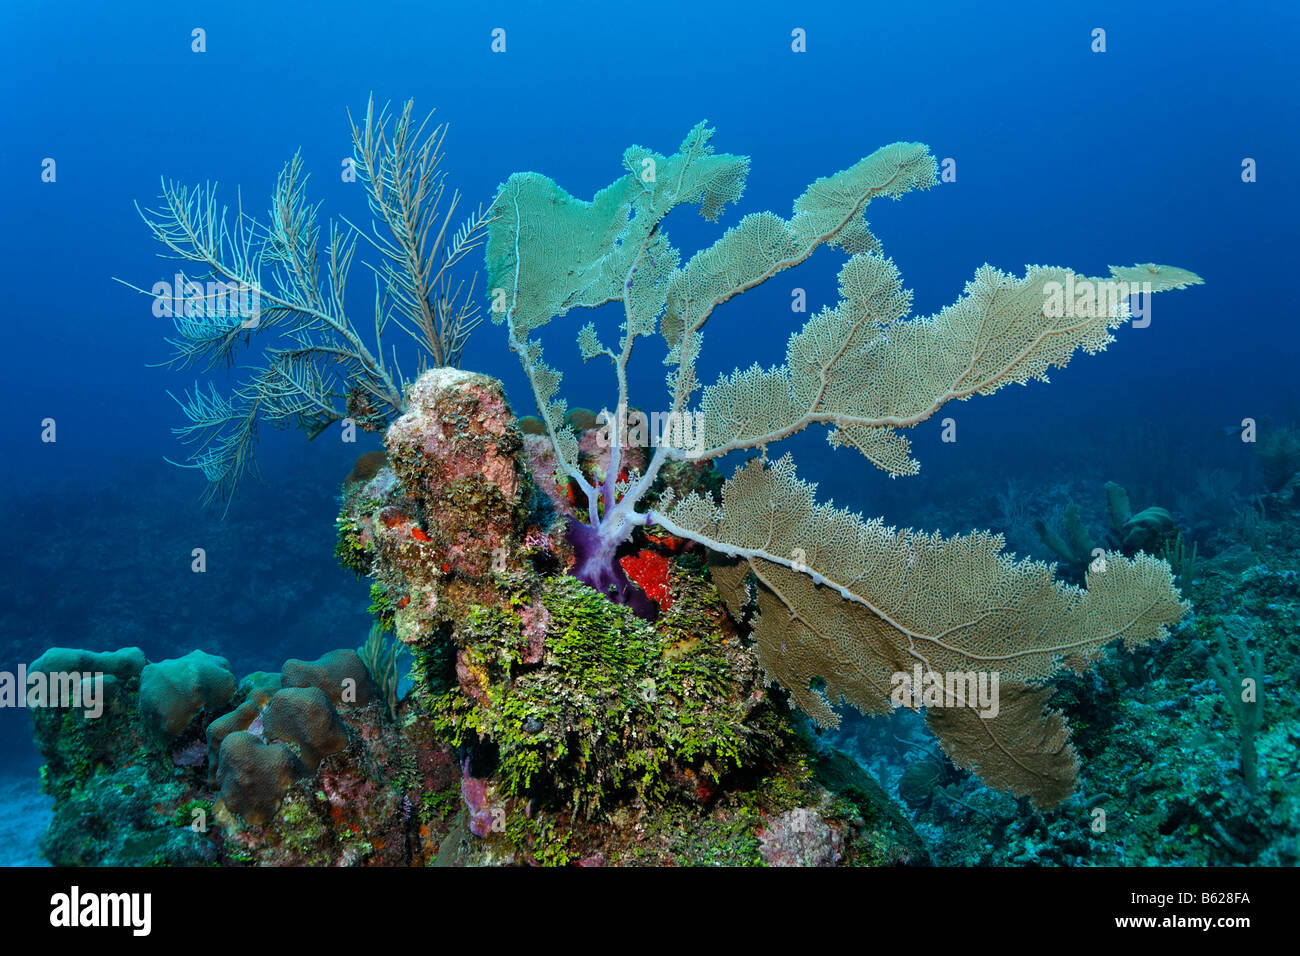 Coral reef or barrier reef alive with Sea Fan coral (Gorgonia flabellum), Halimeda Algae (Halimeda s.) and a variarty Stock Photo